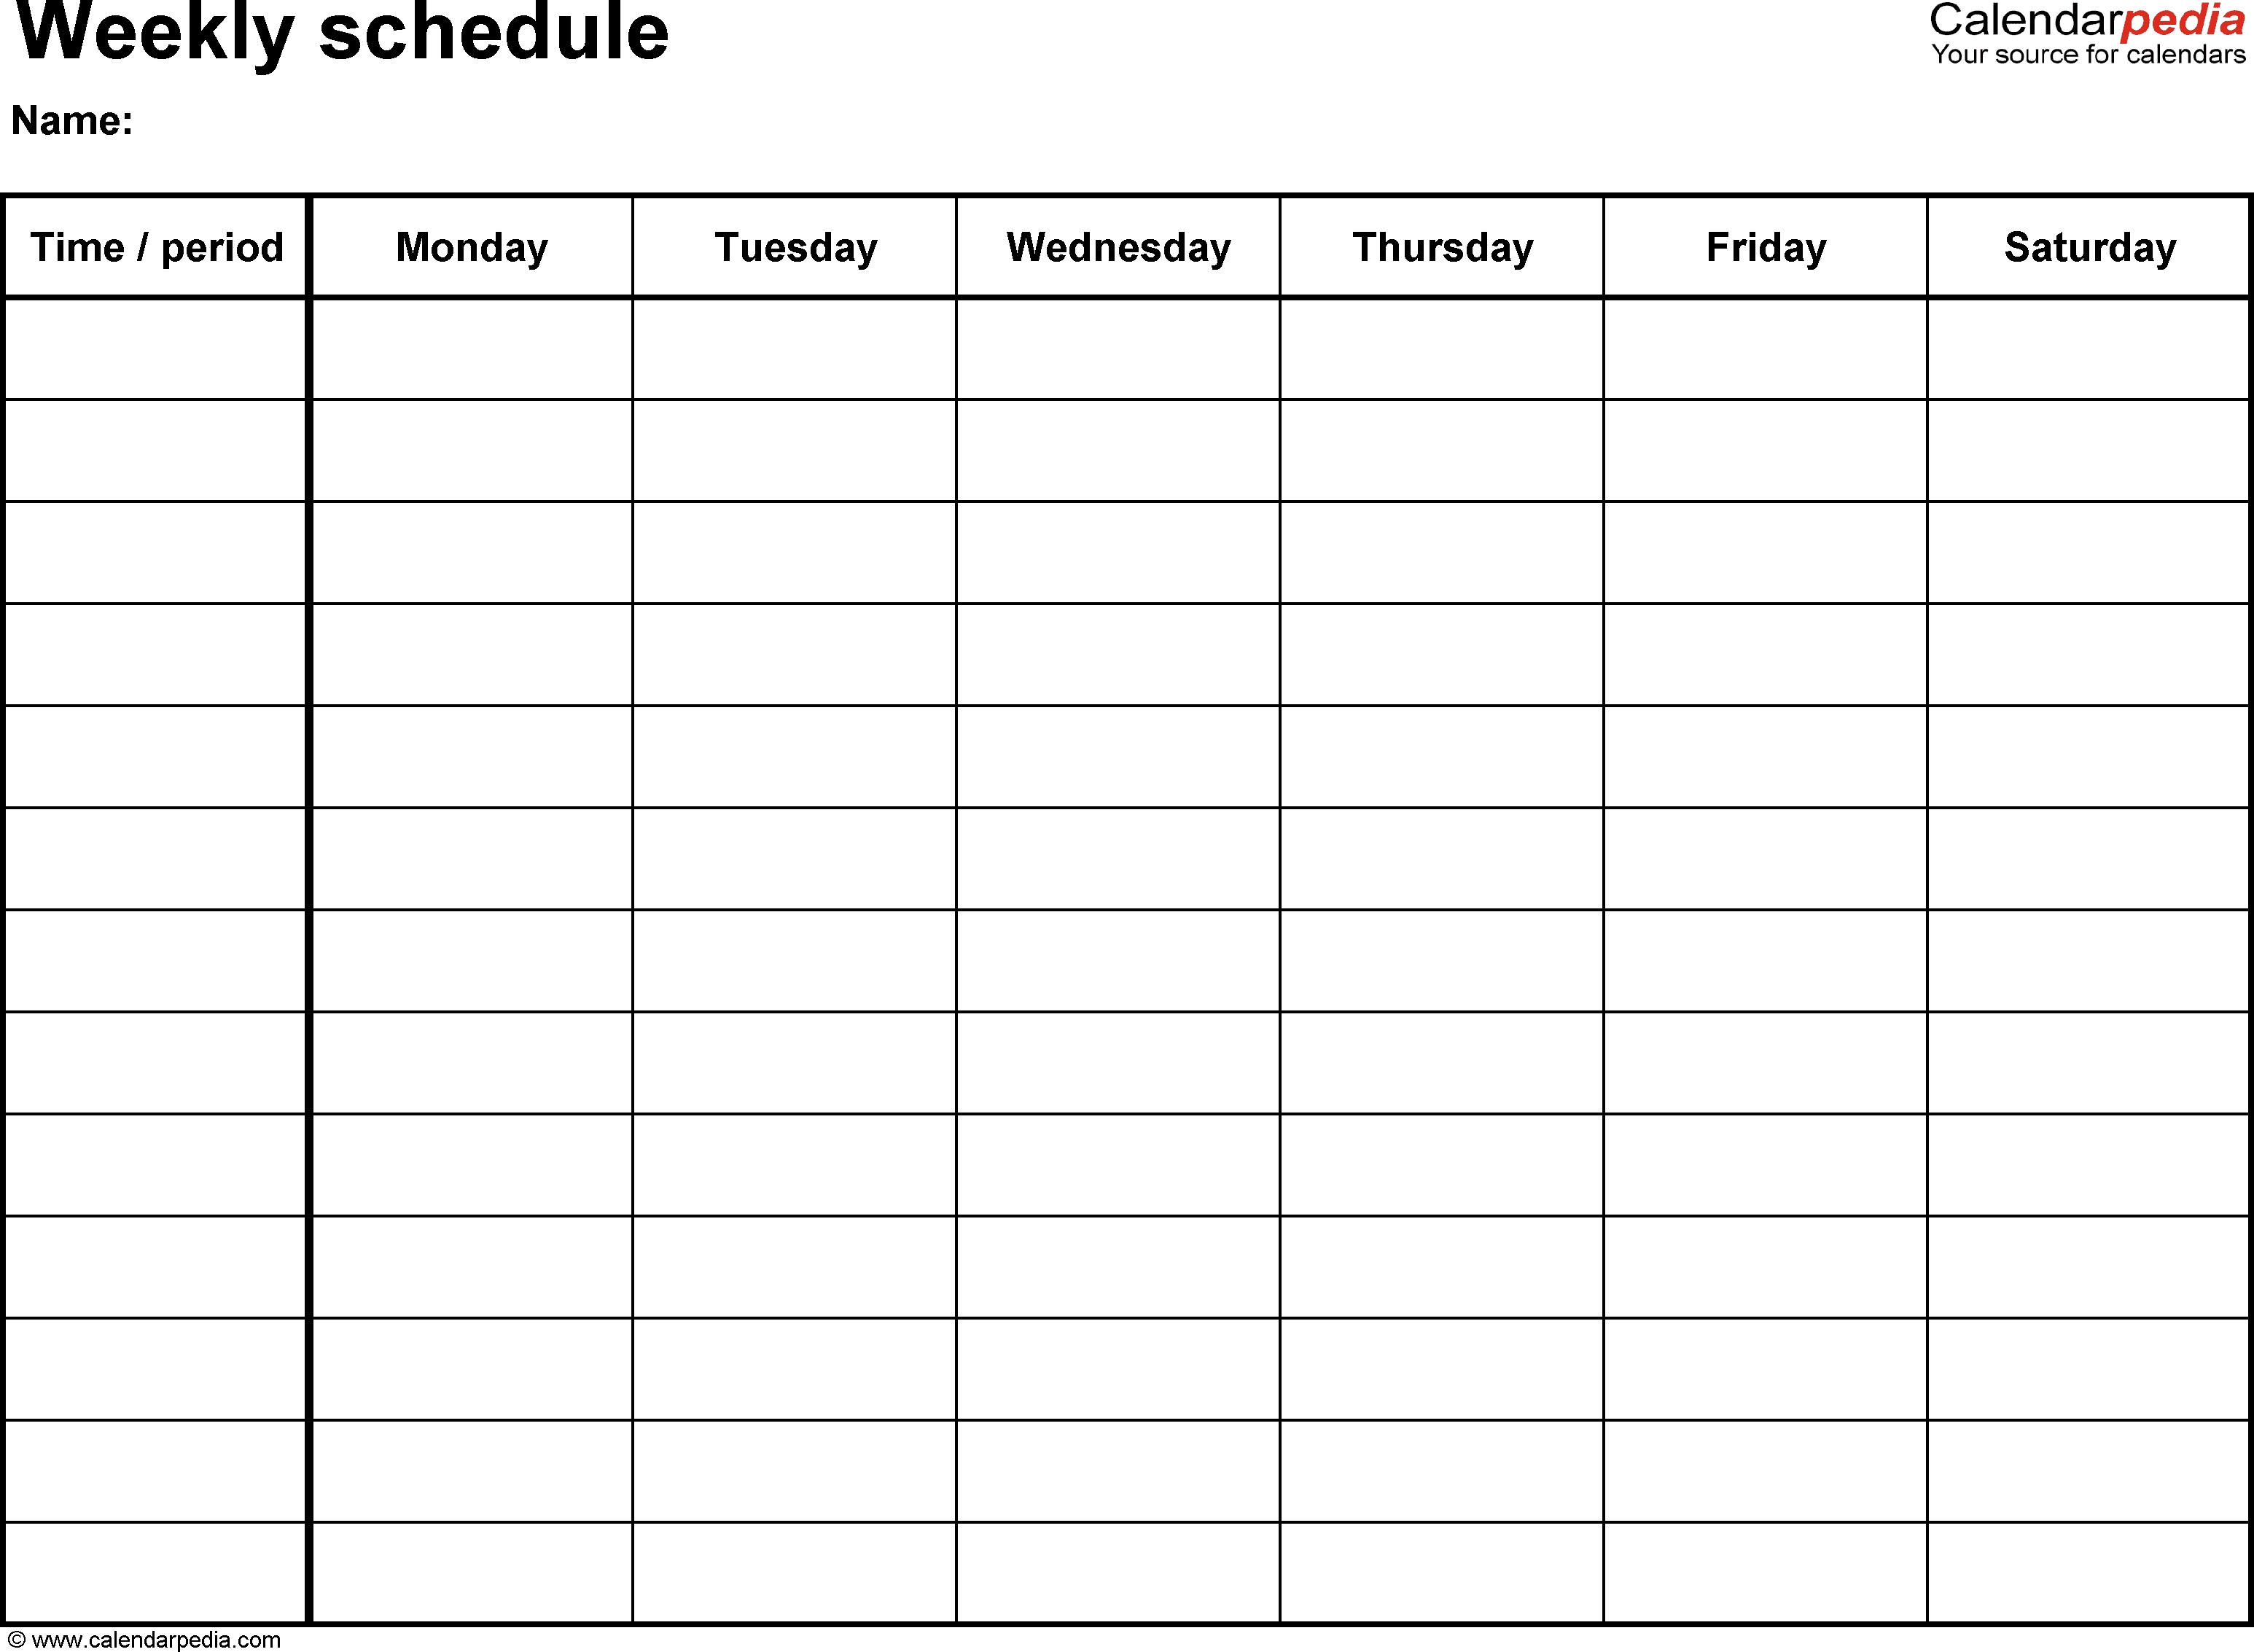 Free Weekly Schedule Templates For Word - 18 Templates within Printable Monday Through Friday Chart